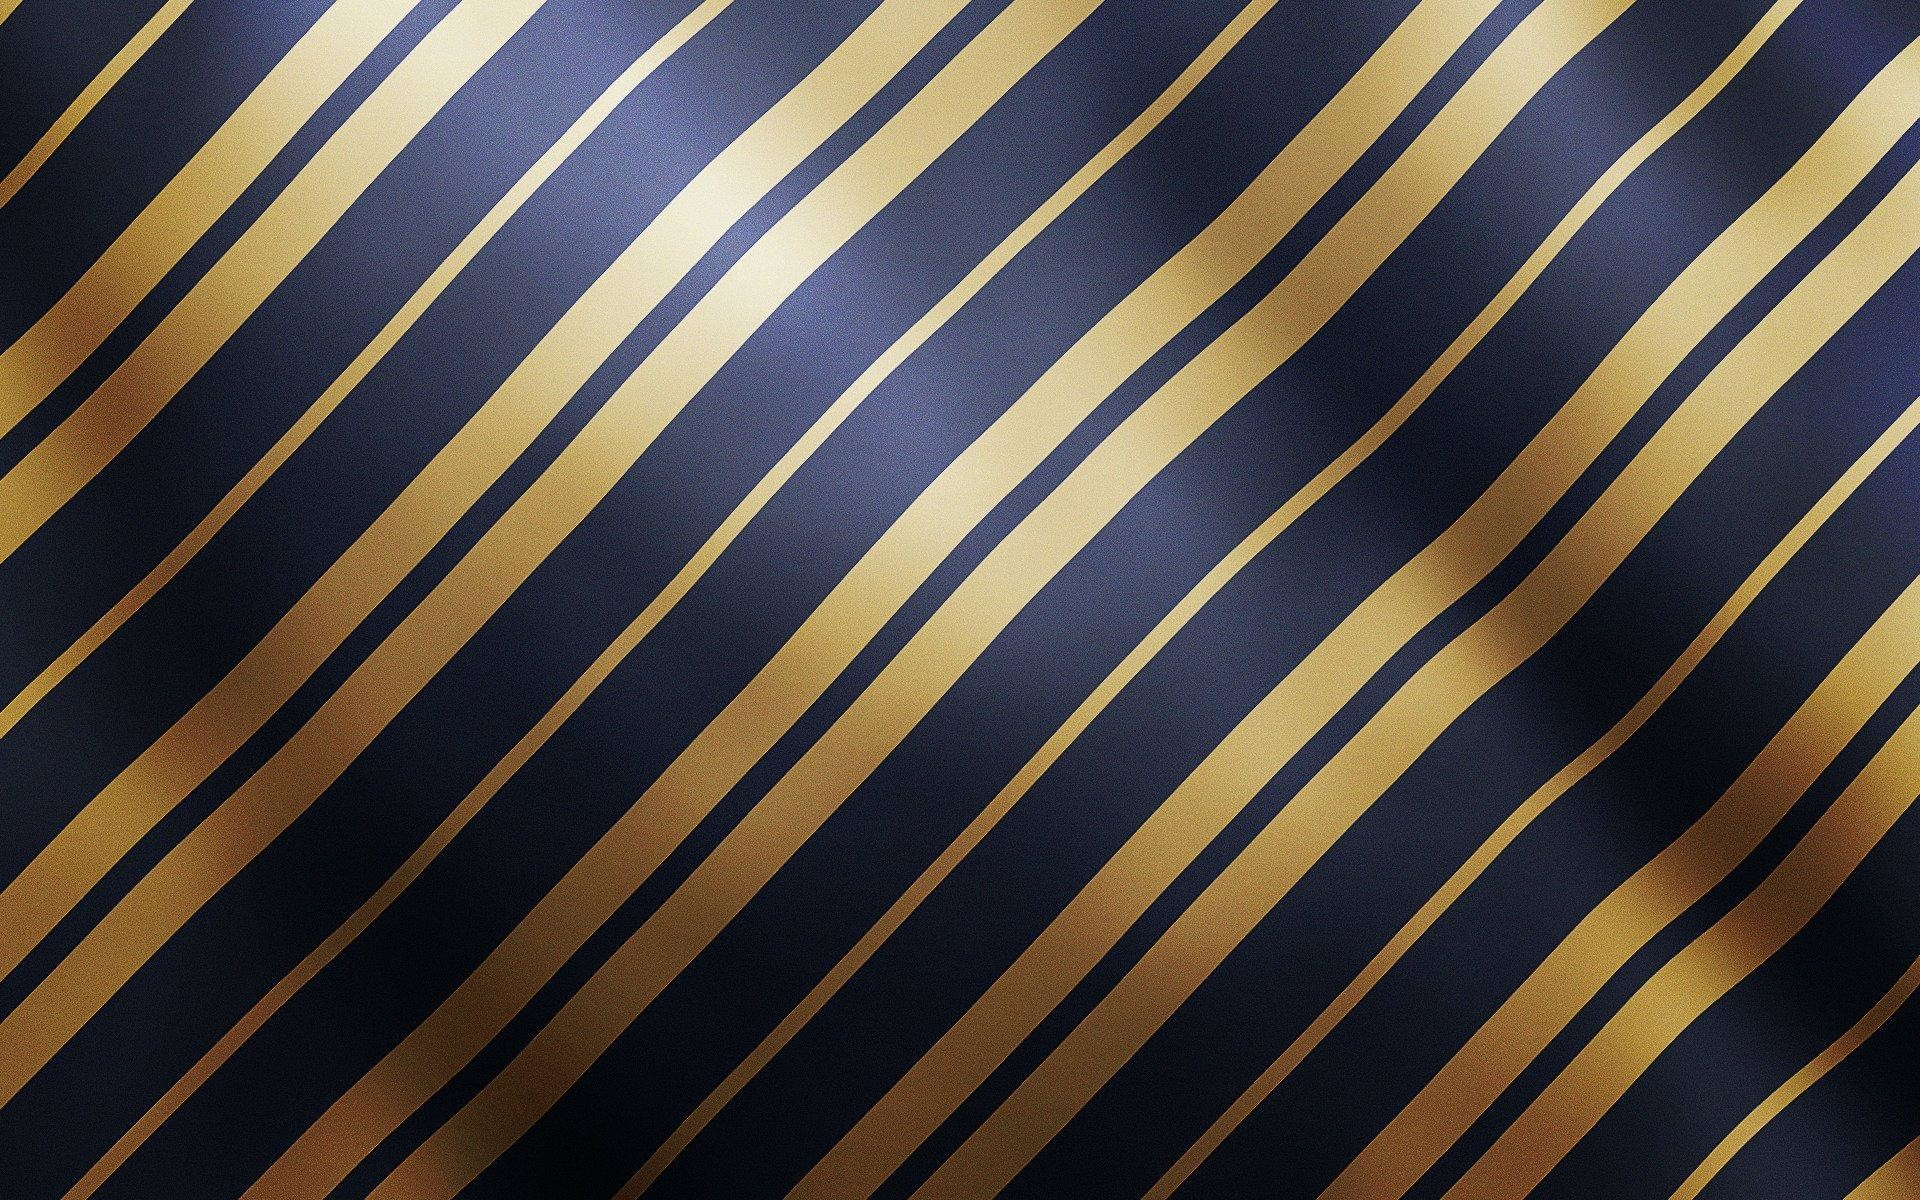 Royal Blue and Gold Wallpaper (48+ images)